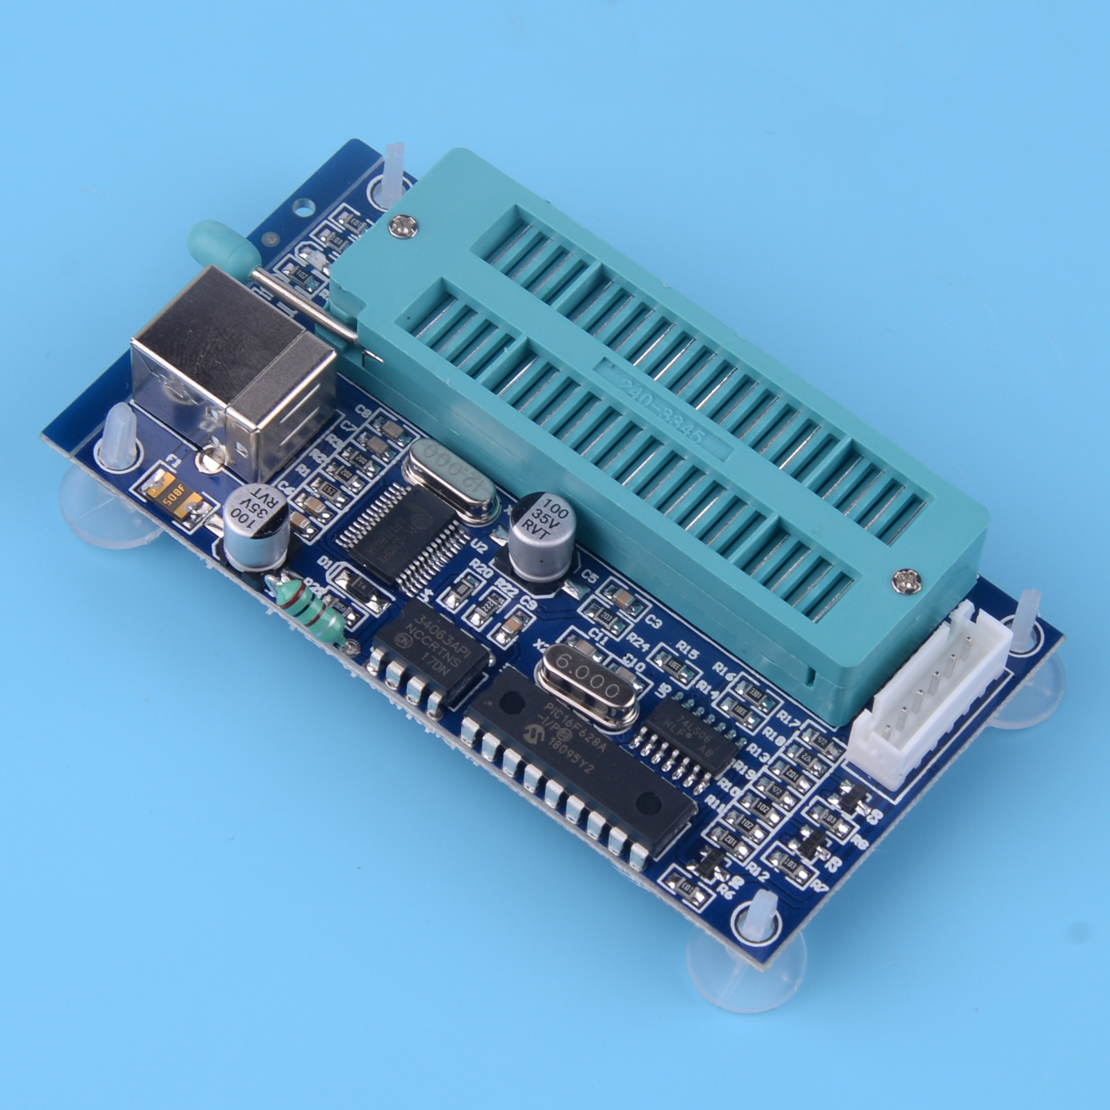 Details about PIC Develop Microcontroller K150 Automatic USB Programming  ICSP Cable Win System